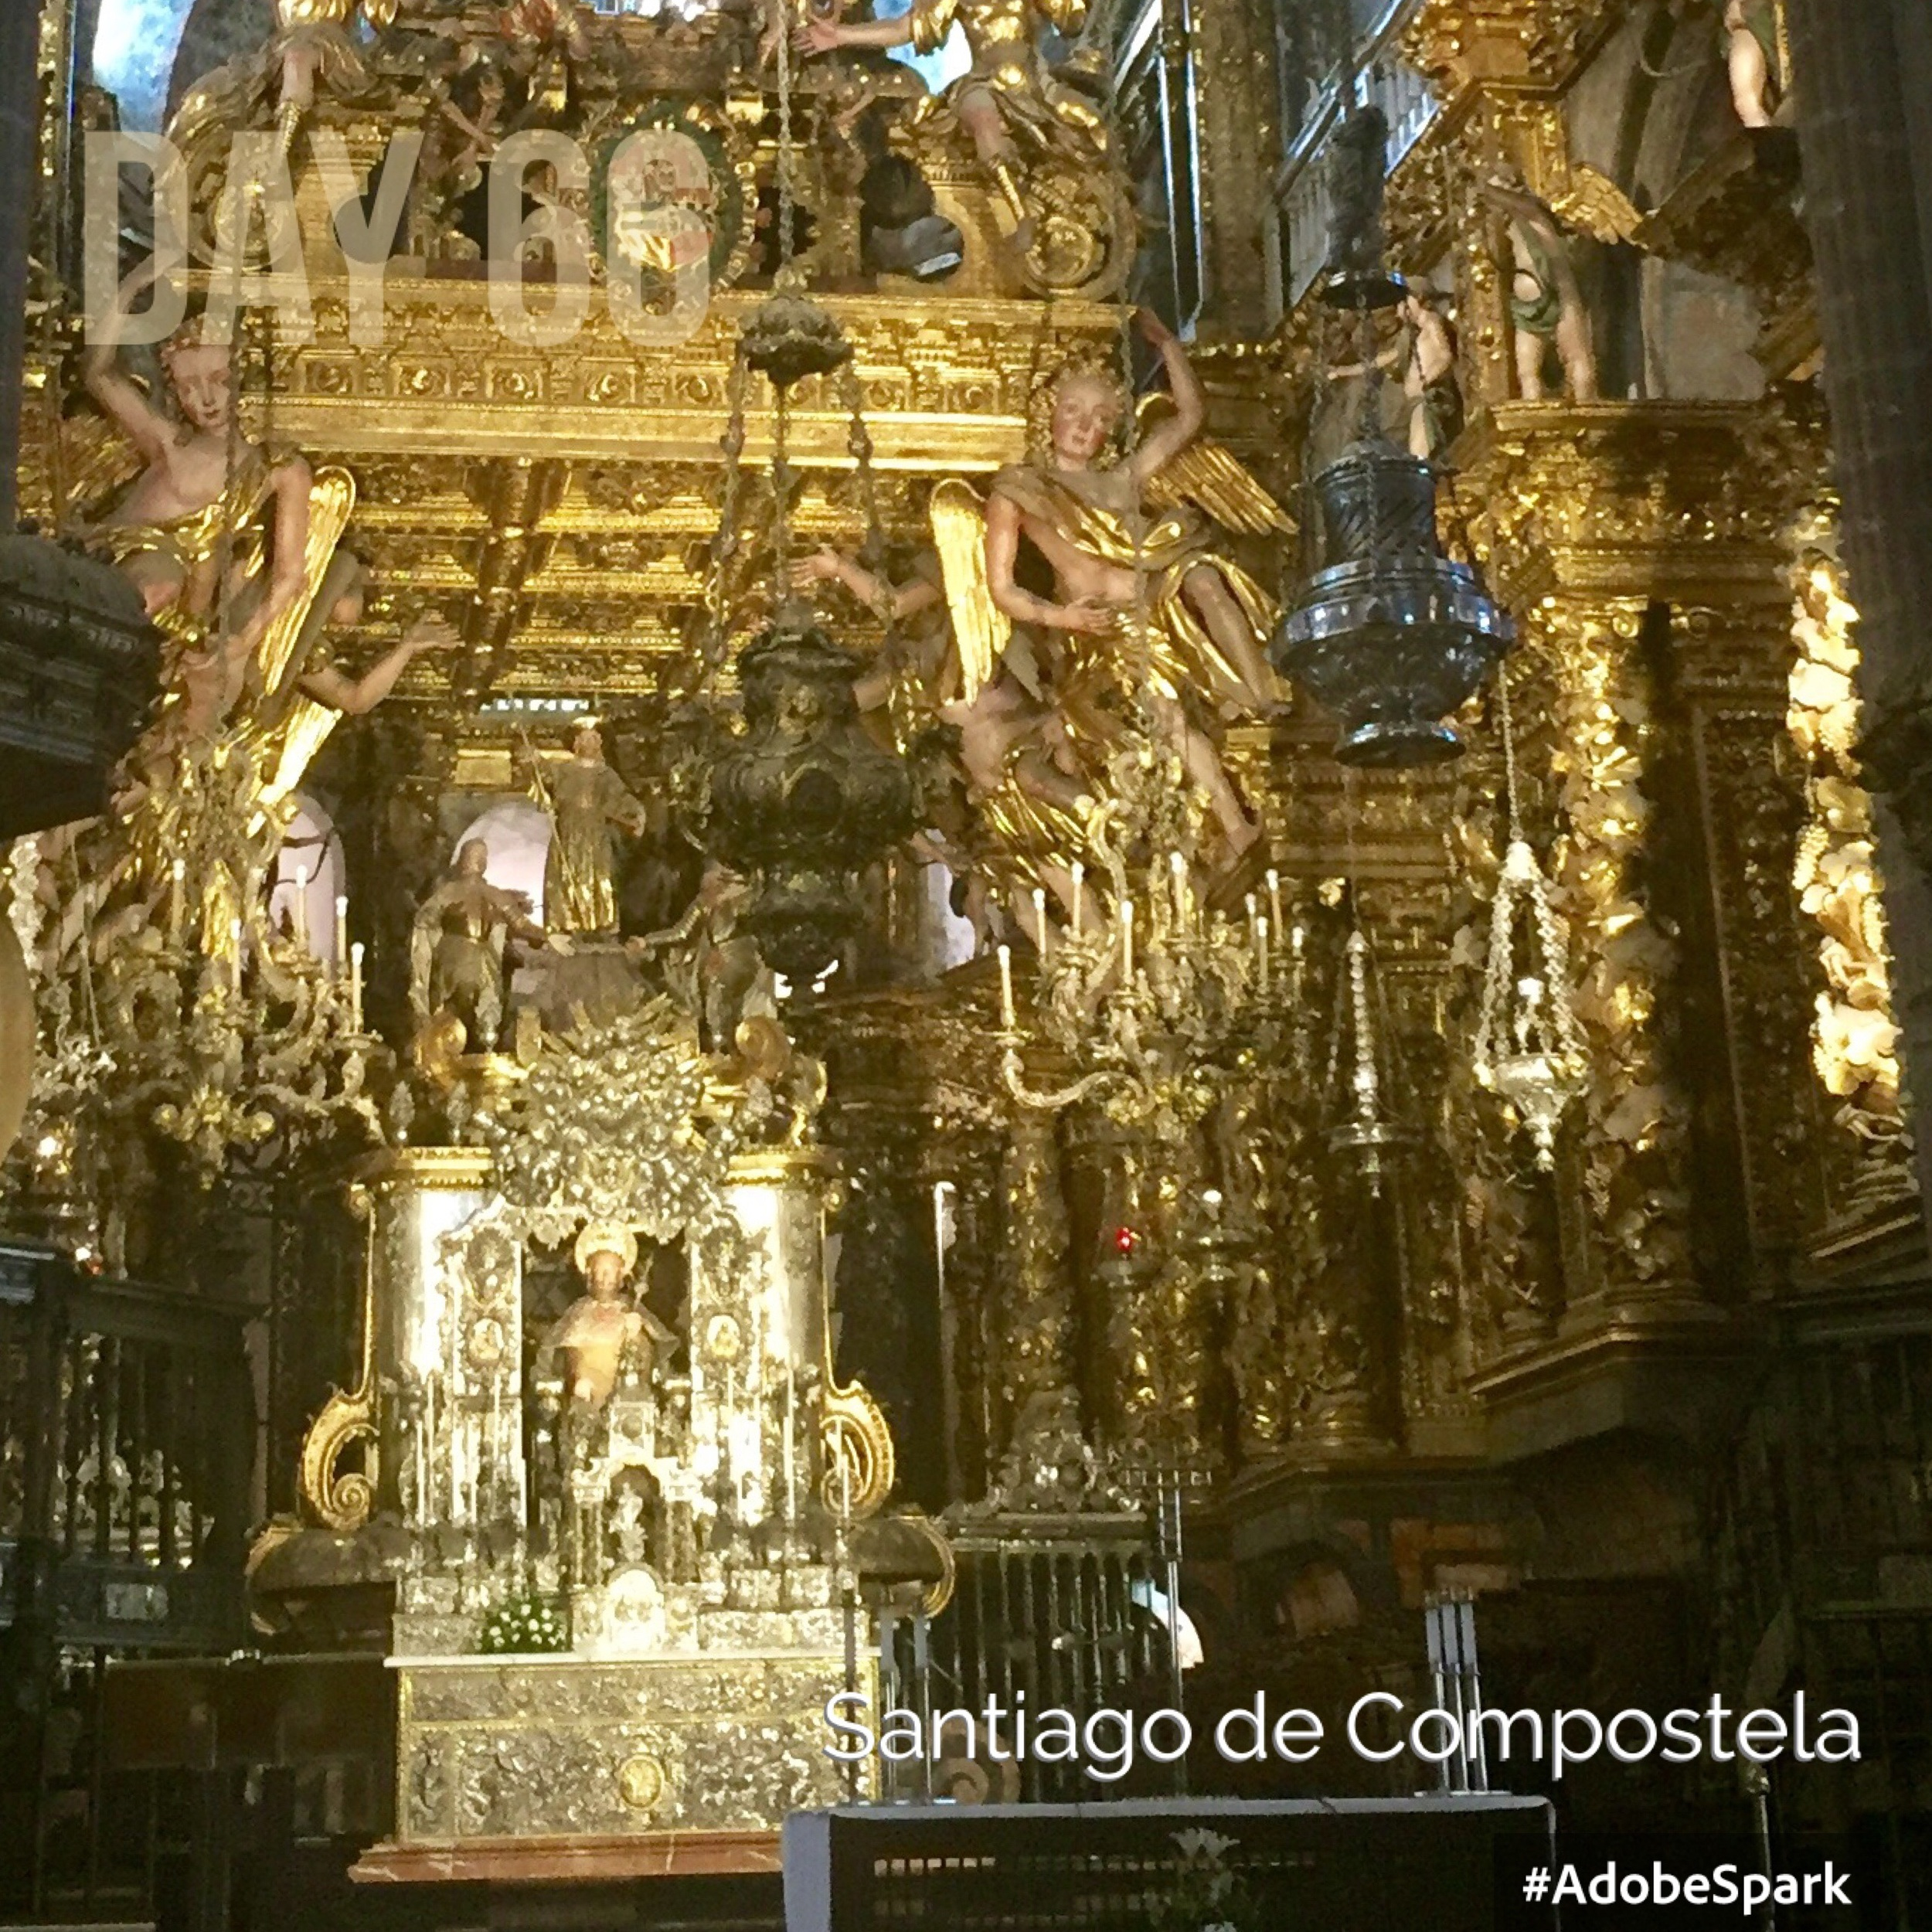 St James in his silver shrine is hugged by thousands of pilgrims! The giant silver incense burner (botofumerio) is in the foreground.